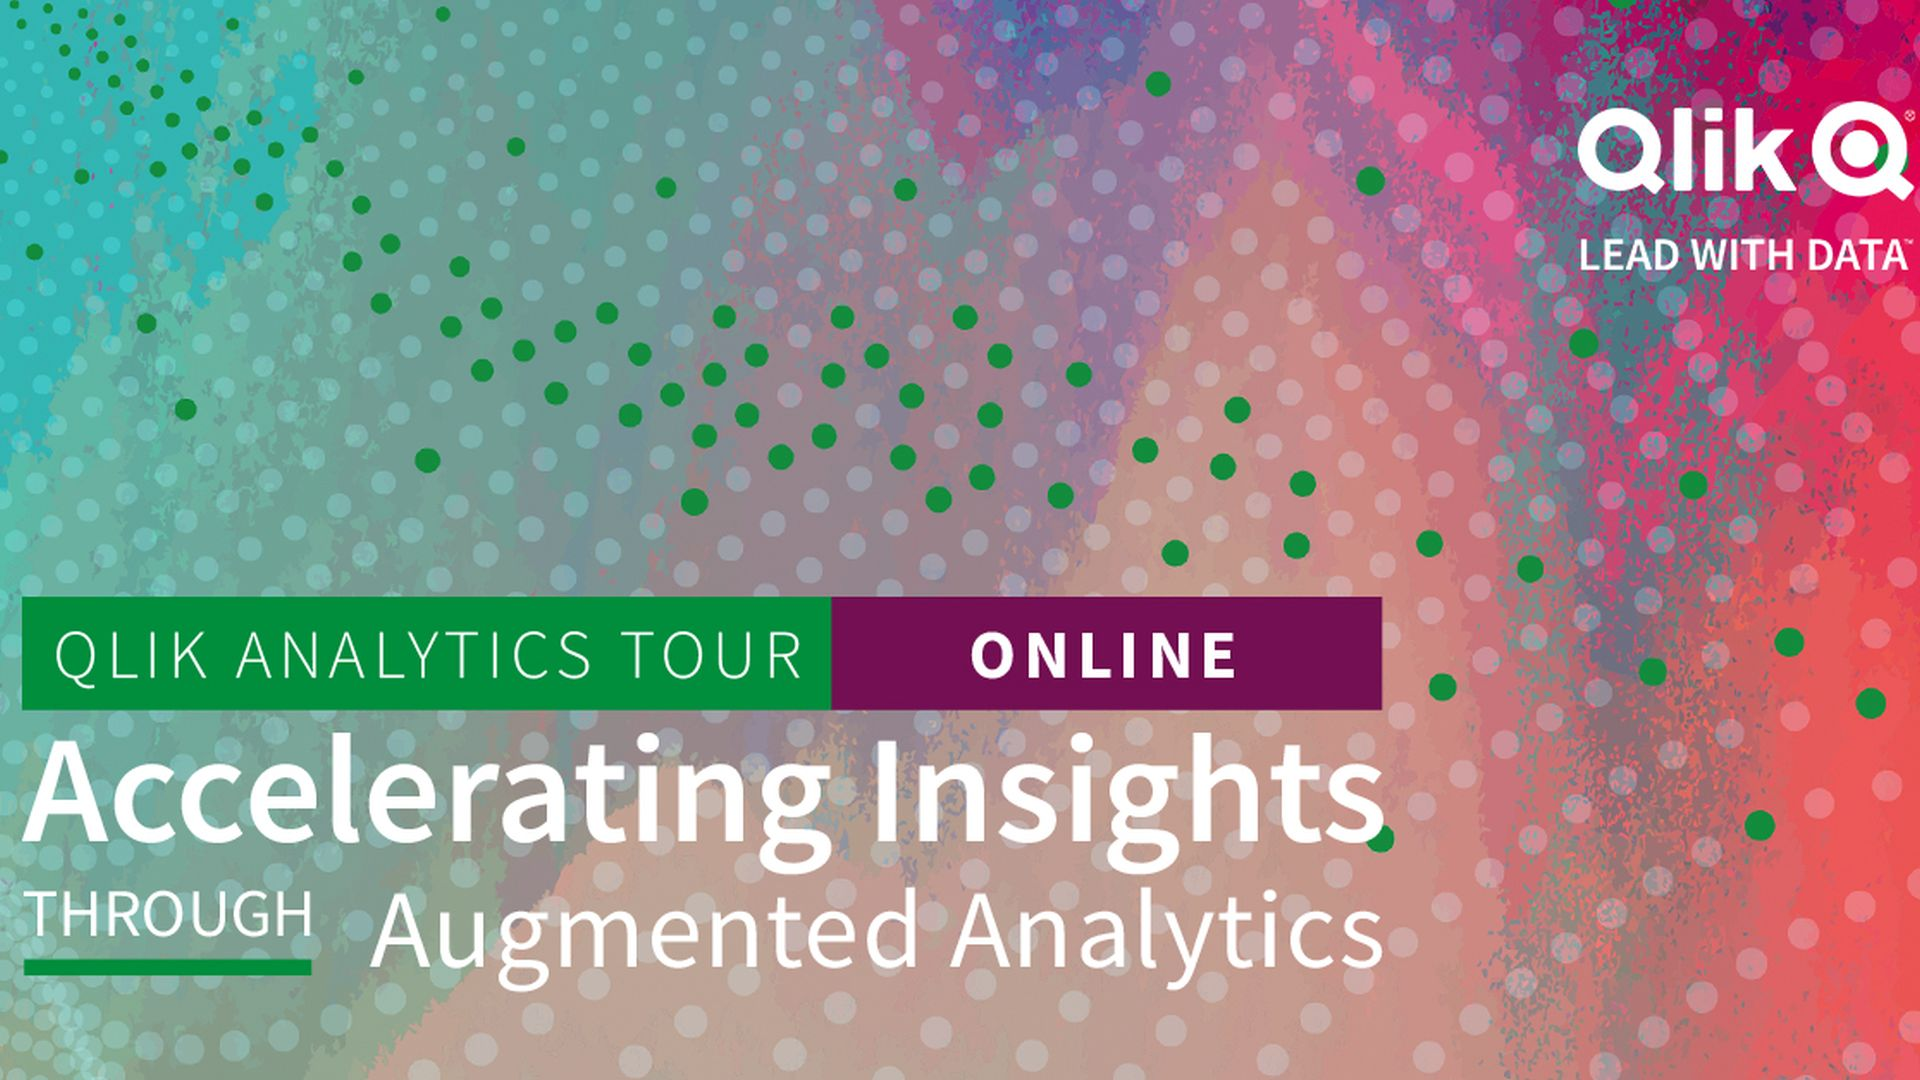 qlik analytics tour